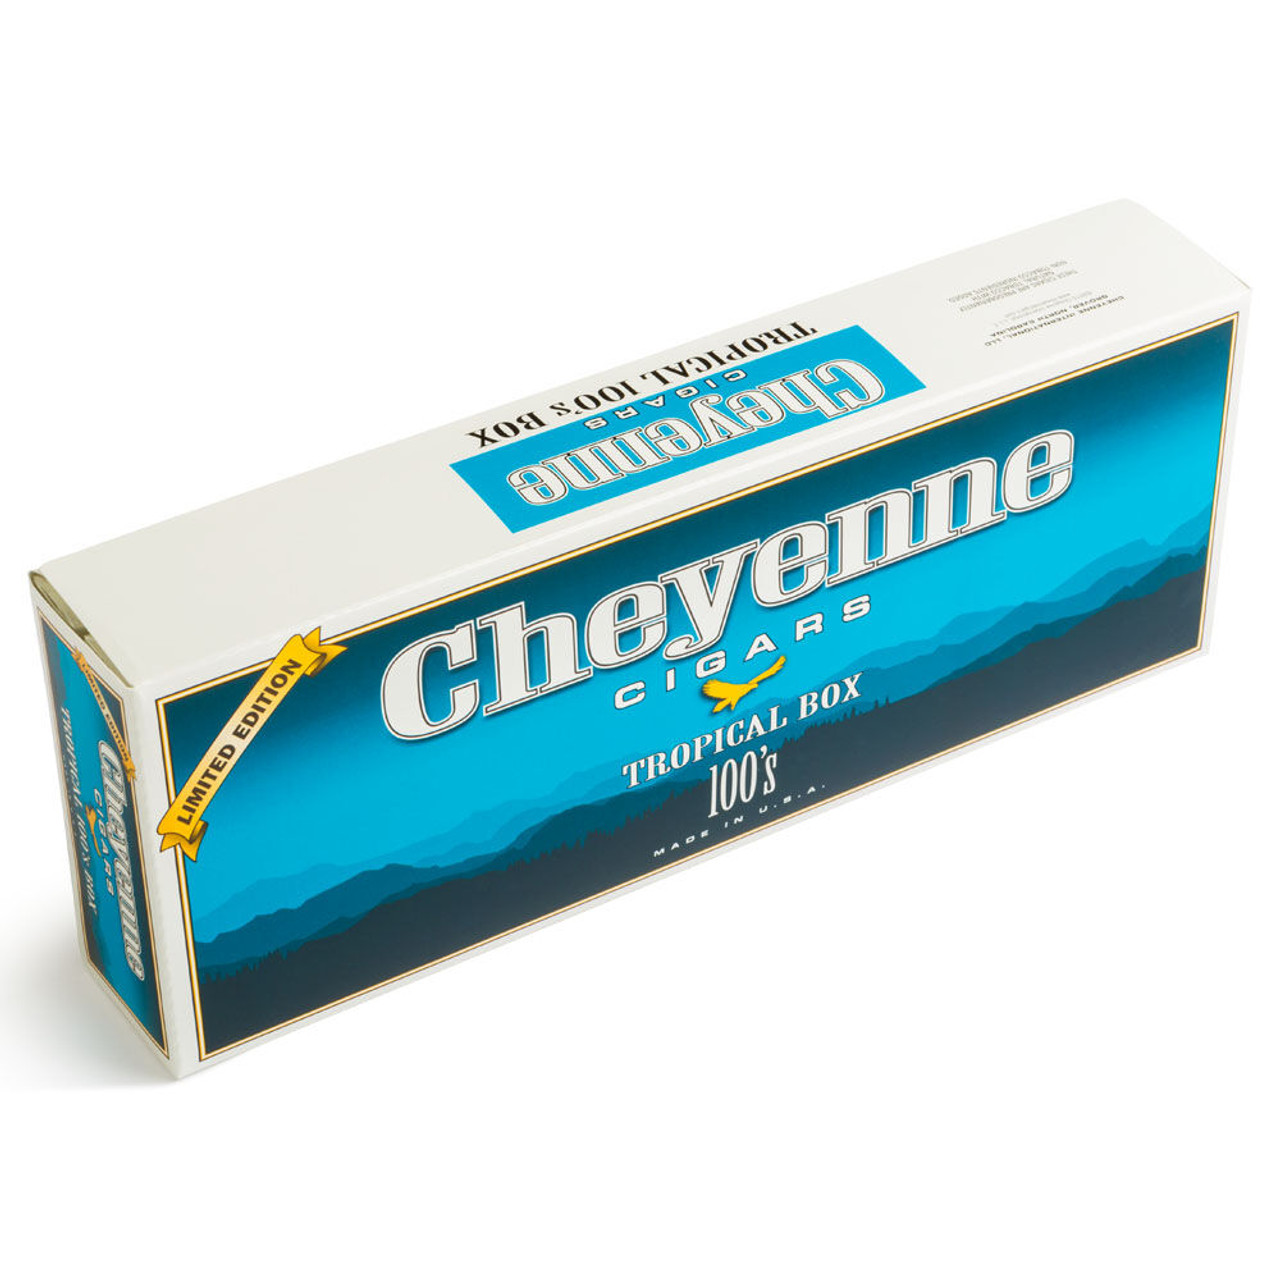 Cheyenne Filtered Cigars Tropical Cigars - 4.0 x 20 (10 Packs of 20 (200 total))